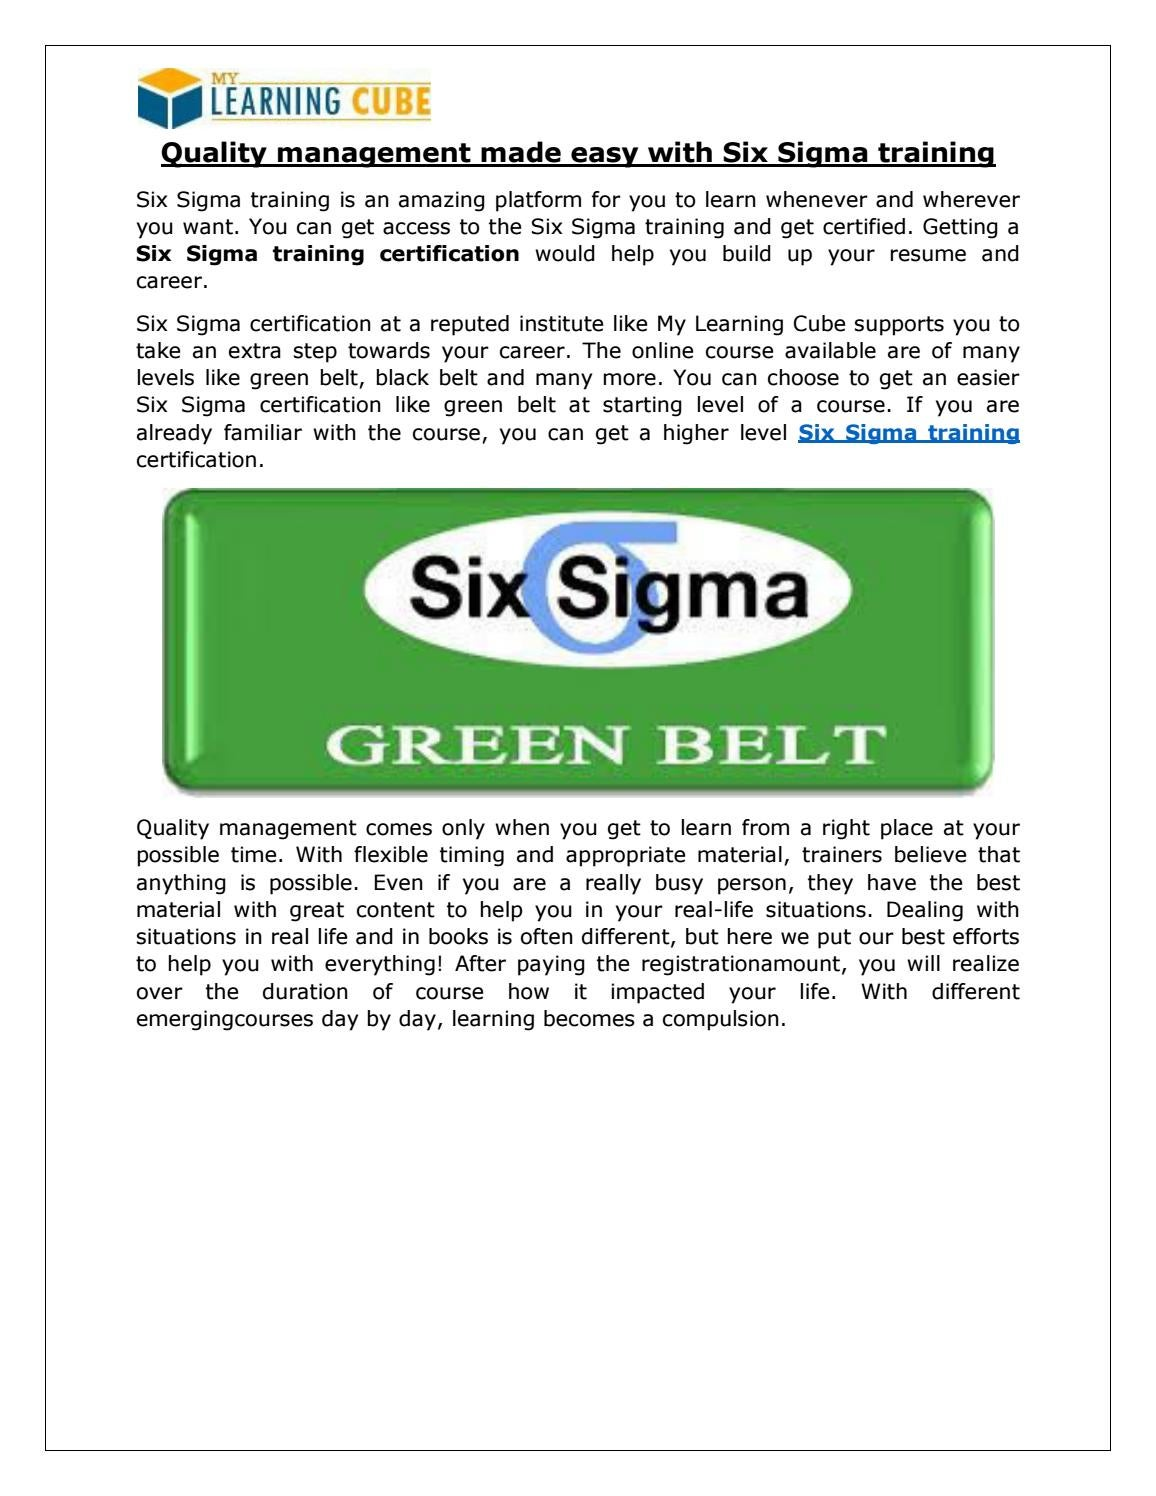 Six Sigma Training Certification By Mylearningcube Issuu